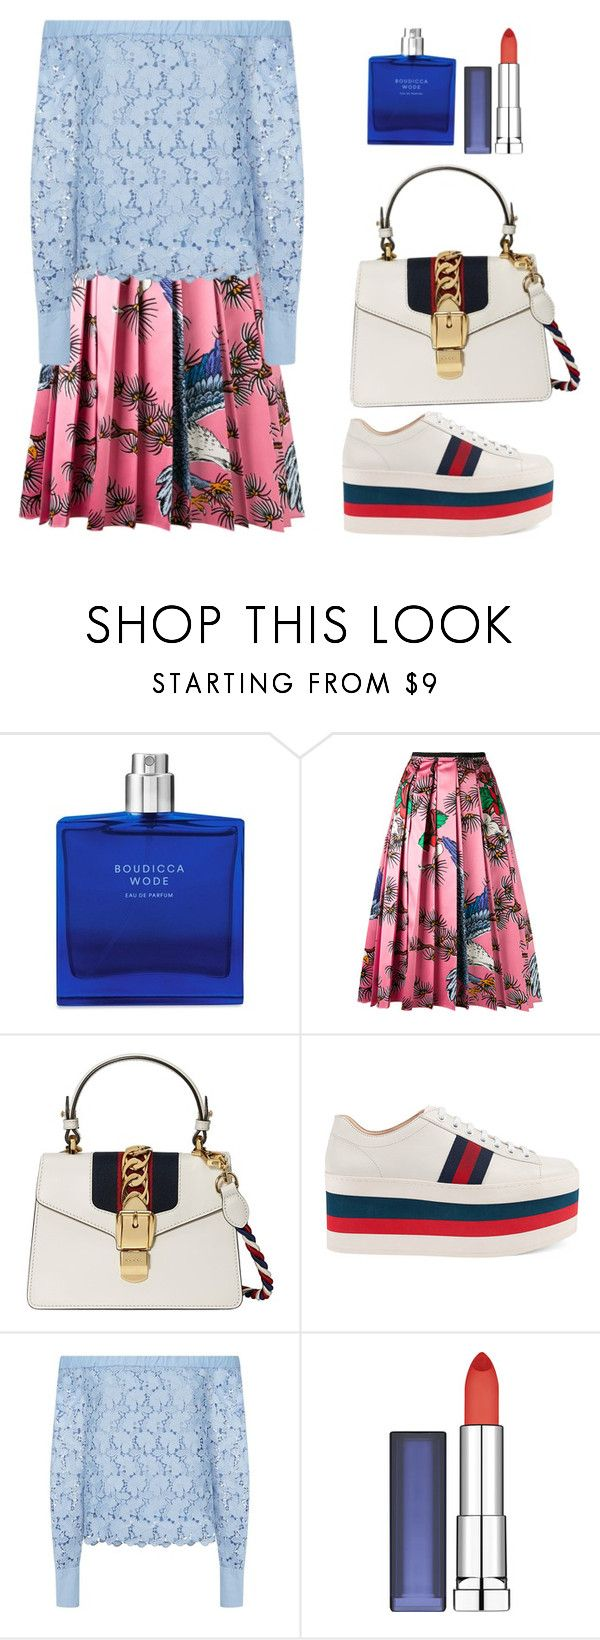 """""""Solado três cores azul, vermelho e branco"""" by jaquemel ❤ liked on Polyvore featuring Boudicca, Gucci, Robert Rodriguez and Maybelline"""